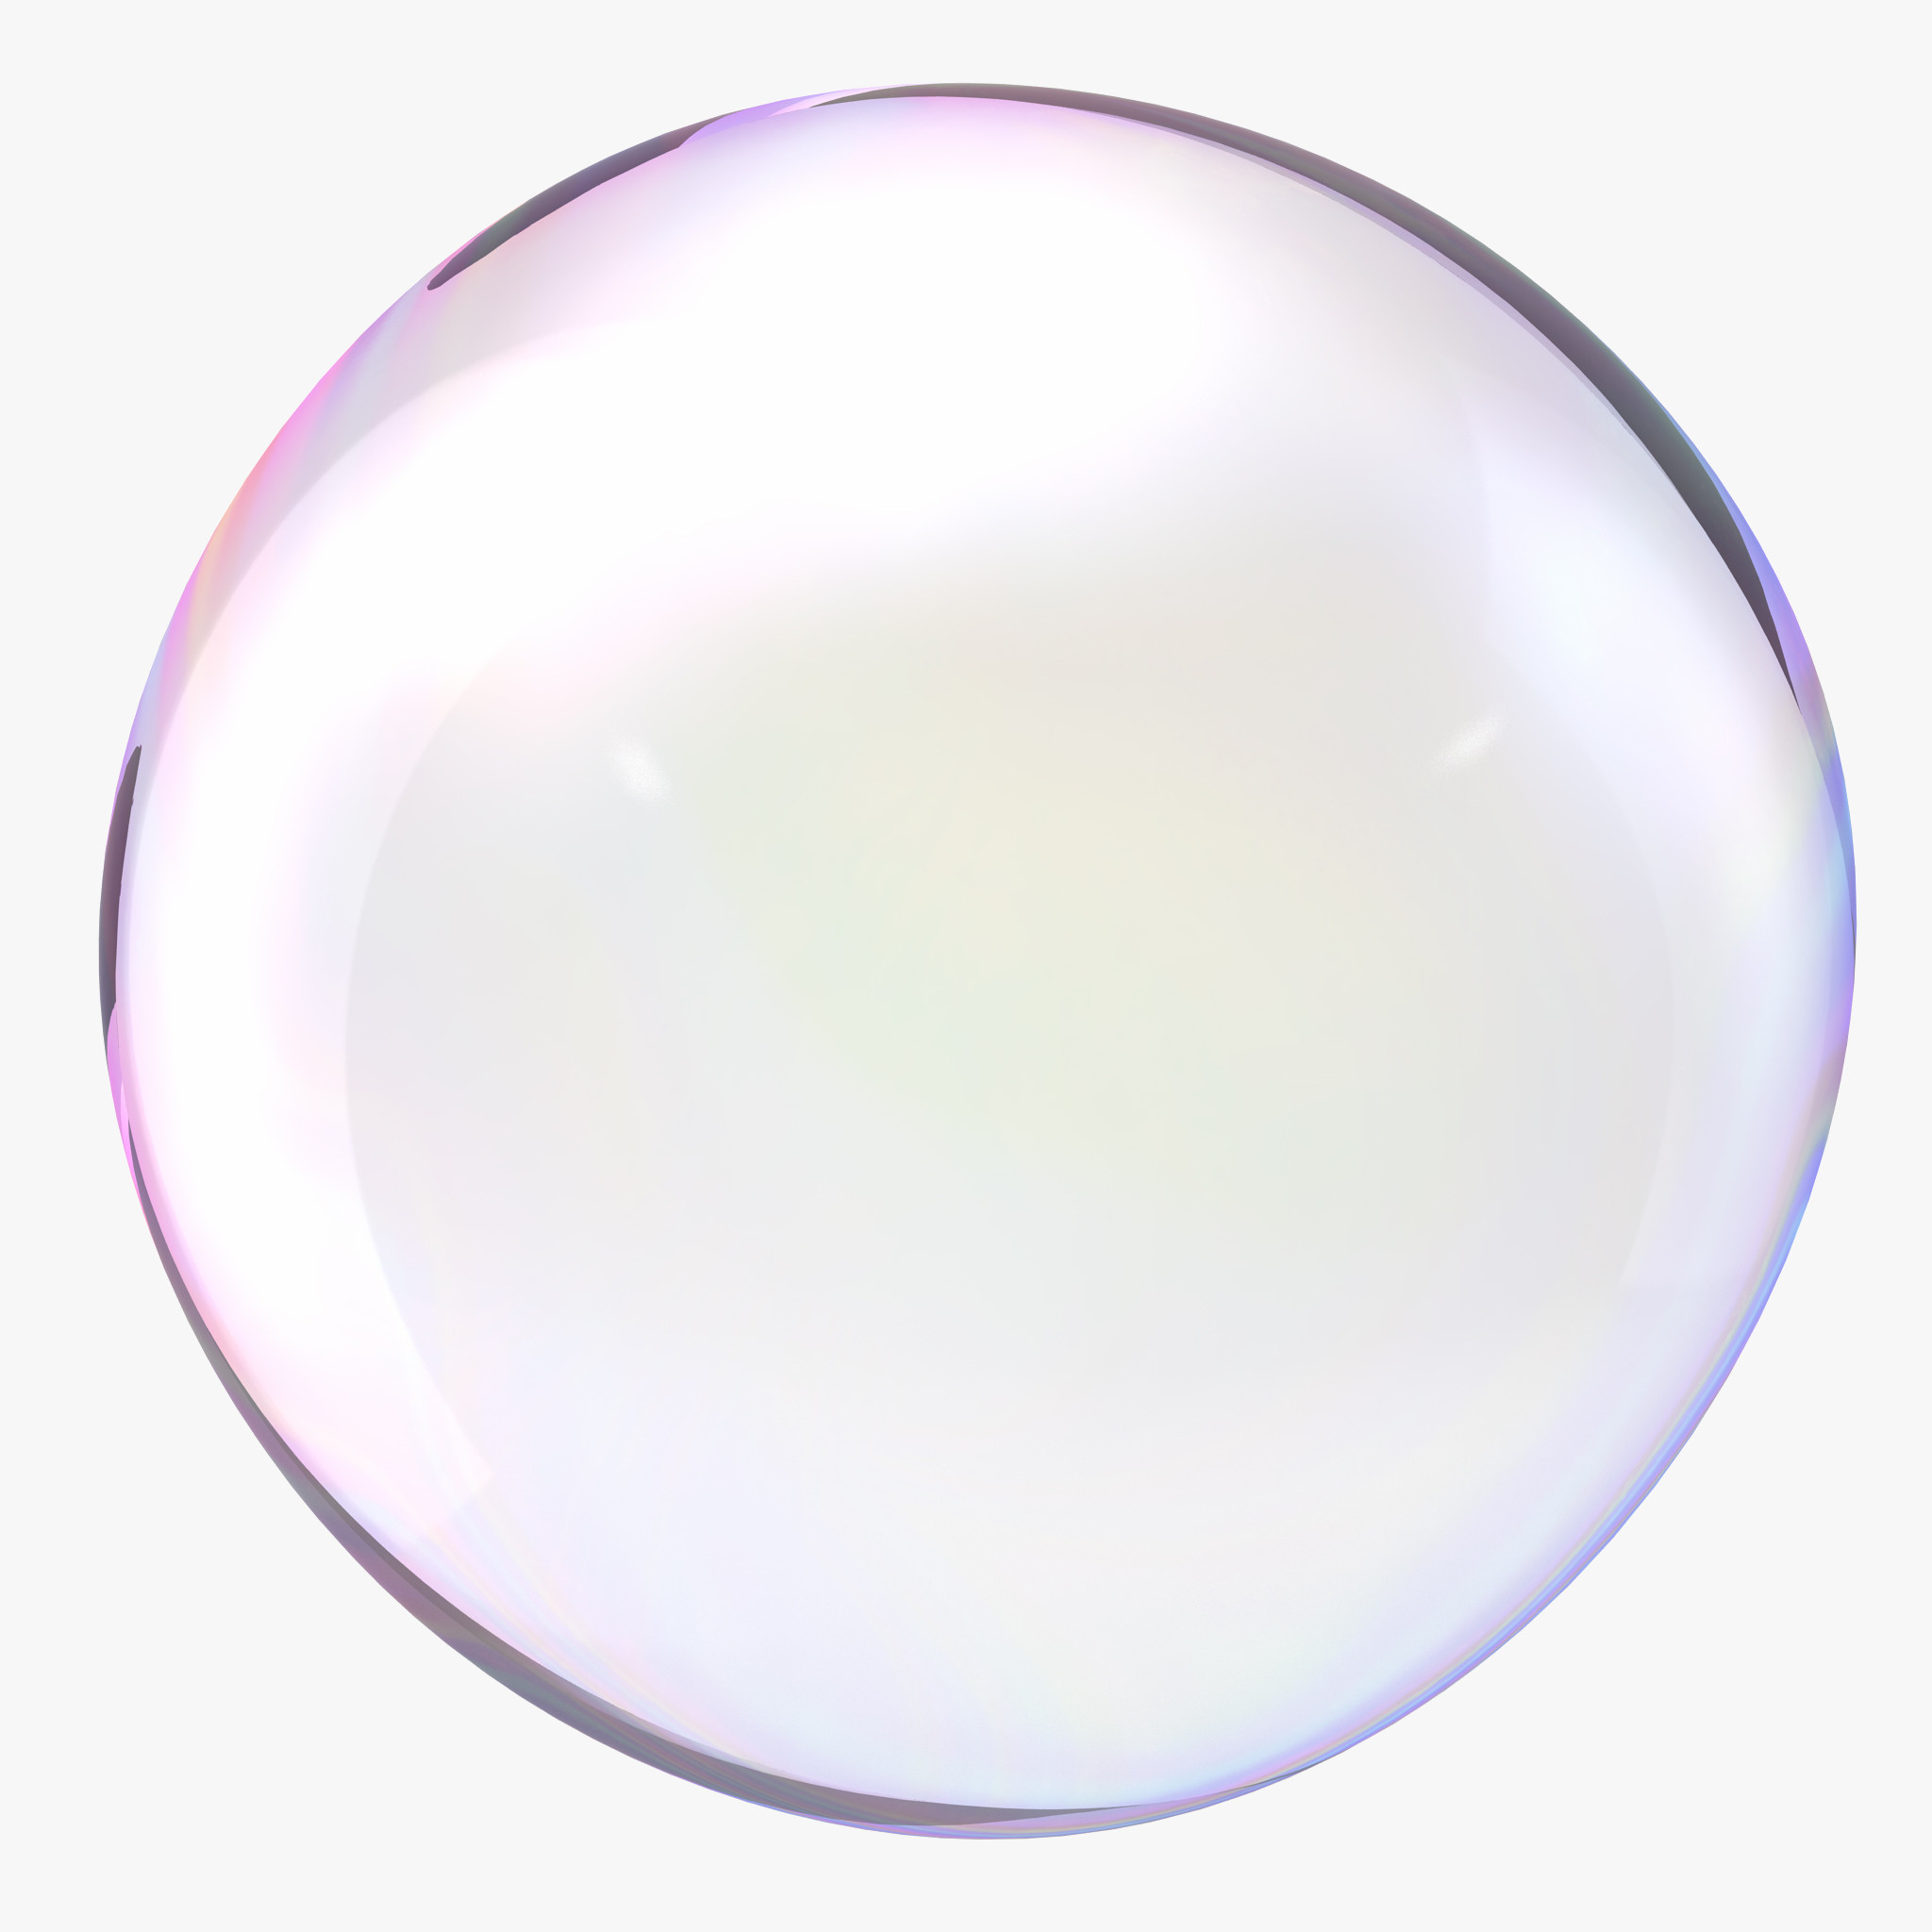 gaussian distributions are soap bubbles